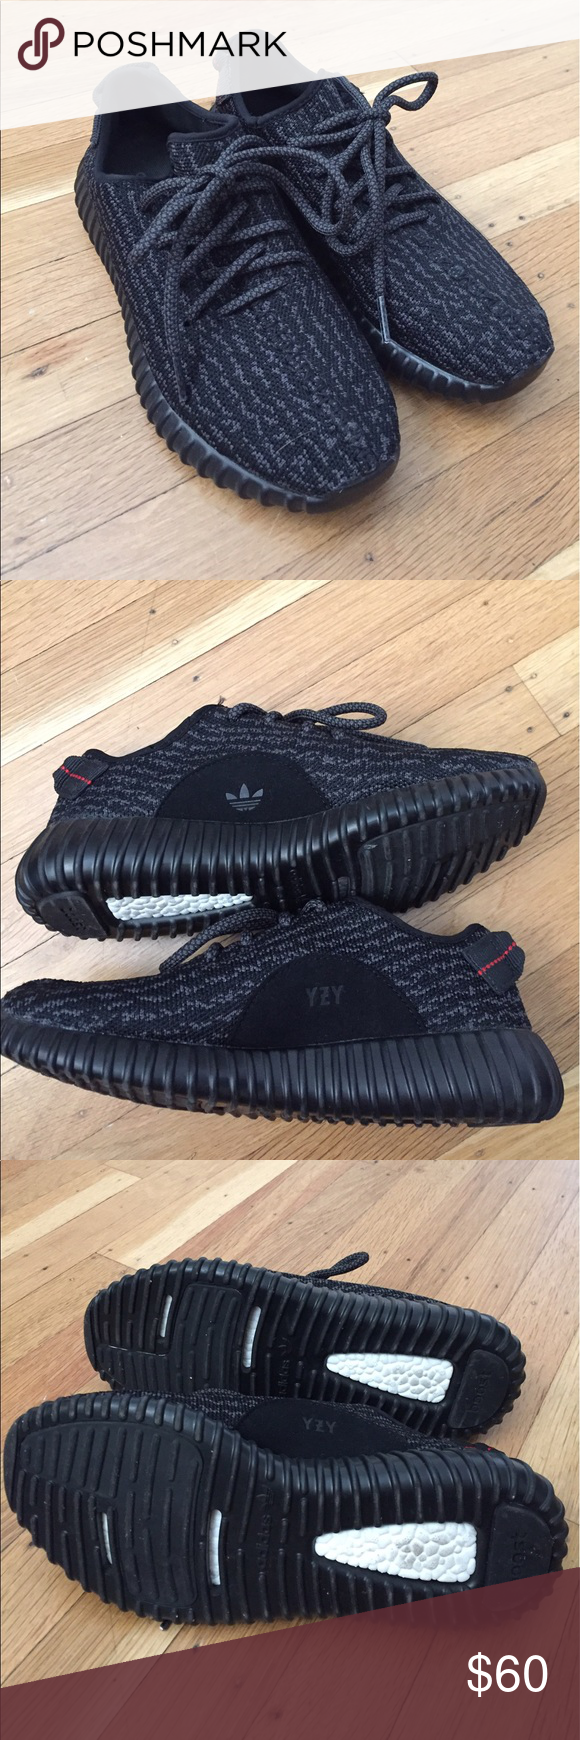 Yeezy boost 350 pirate black non authentic ( fake ) yeezy boost 350 pirate  black. No box no receipt. Size 5 in men s 7 in women s. runs true to size. 60fbaa9d8c